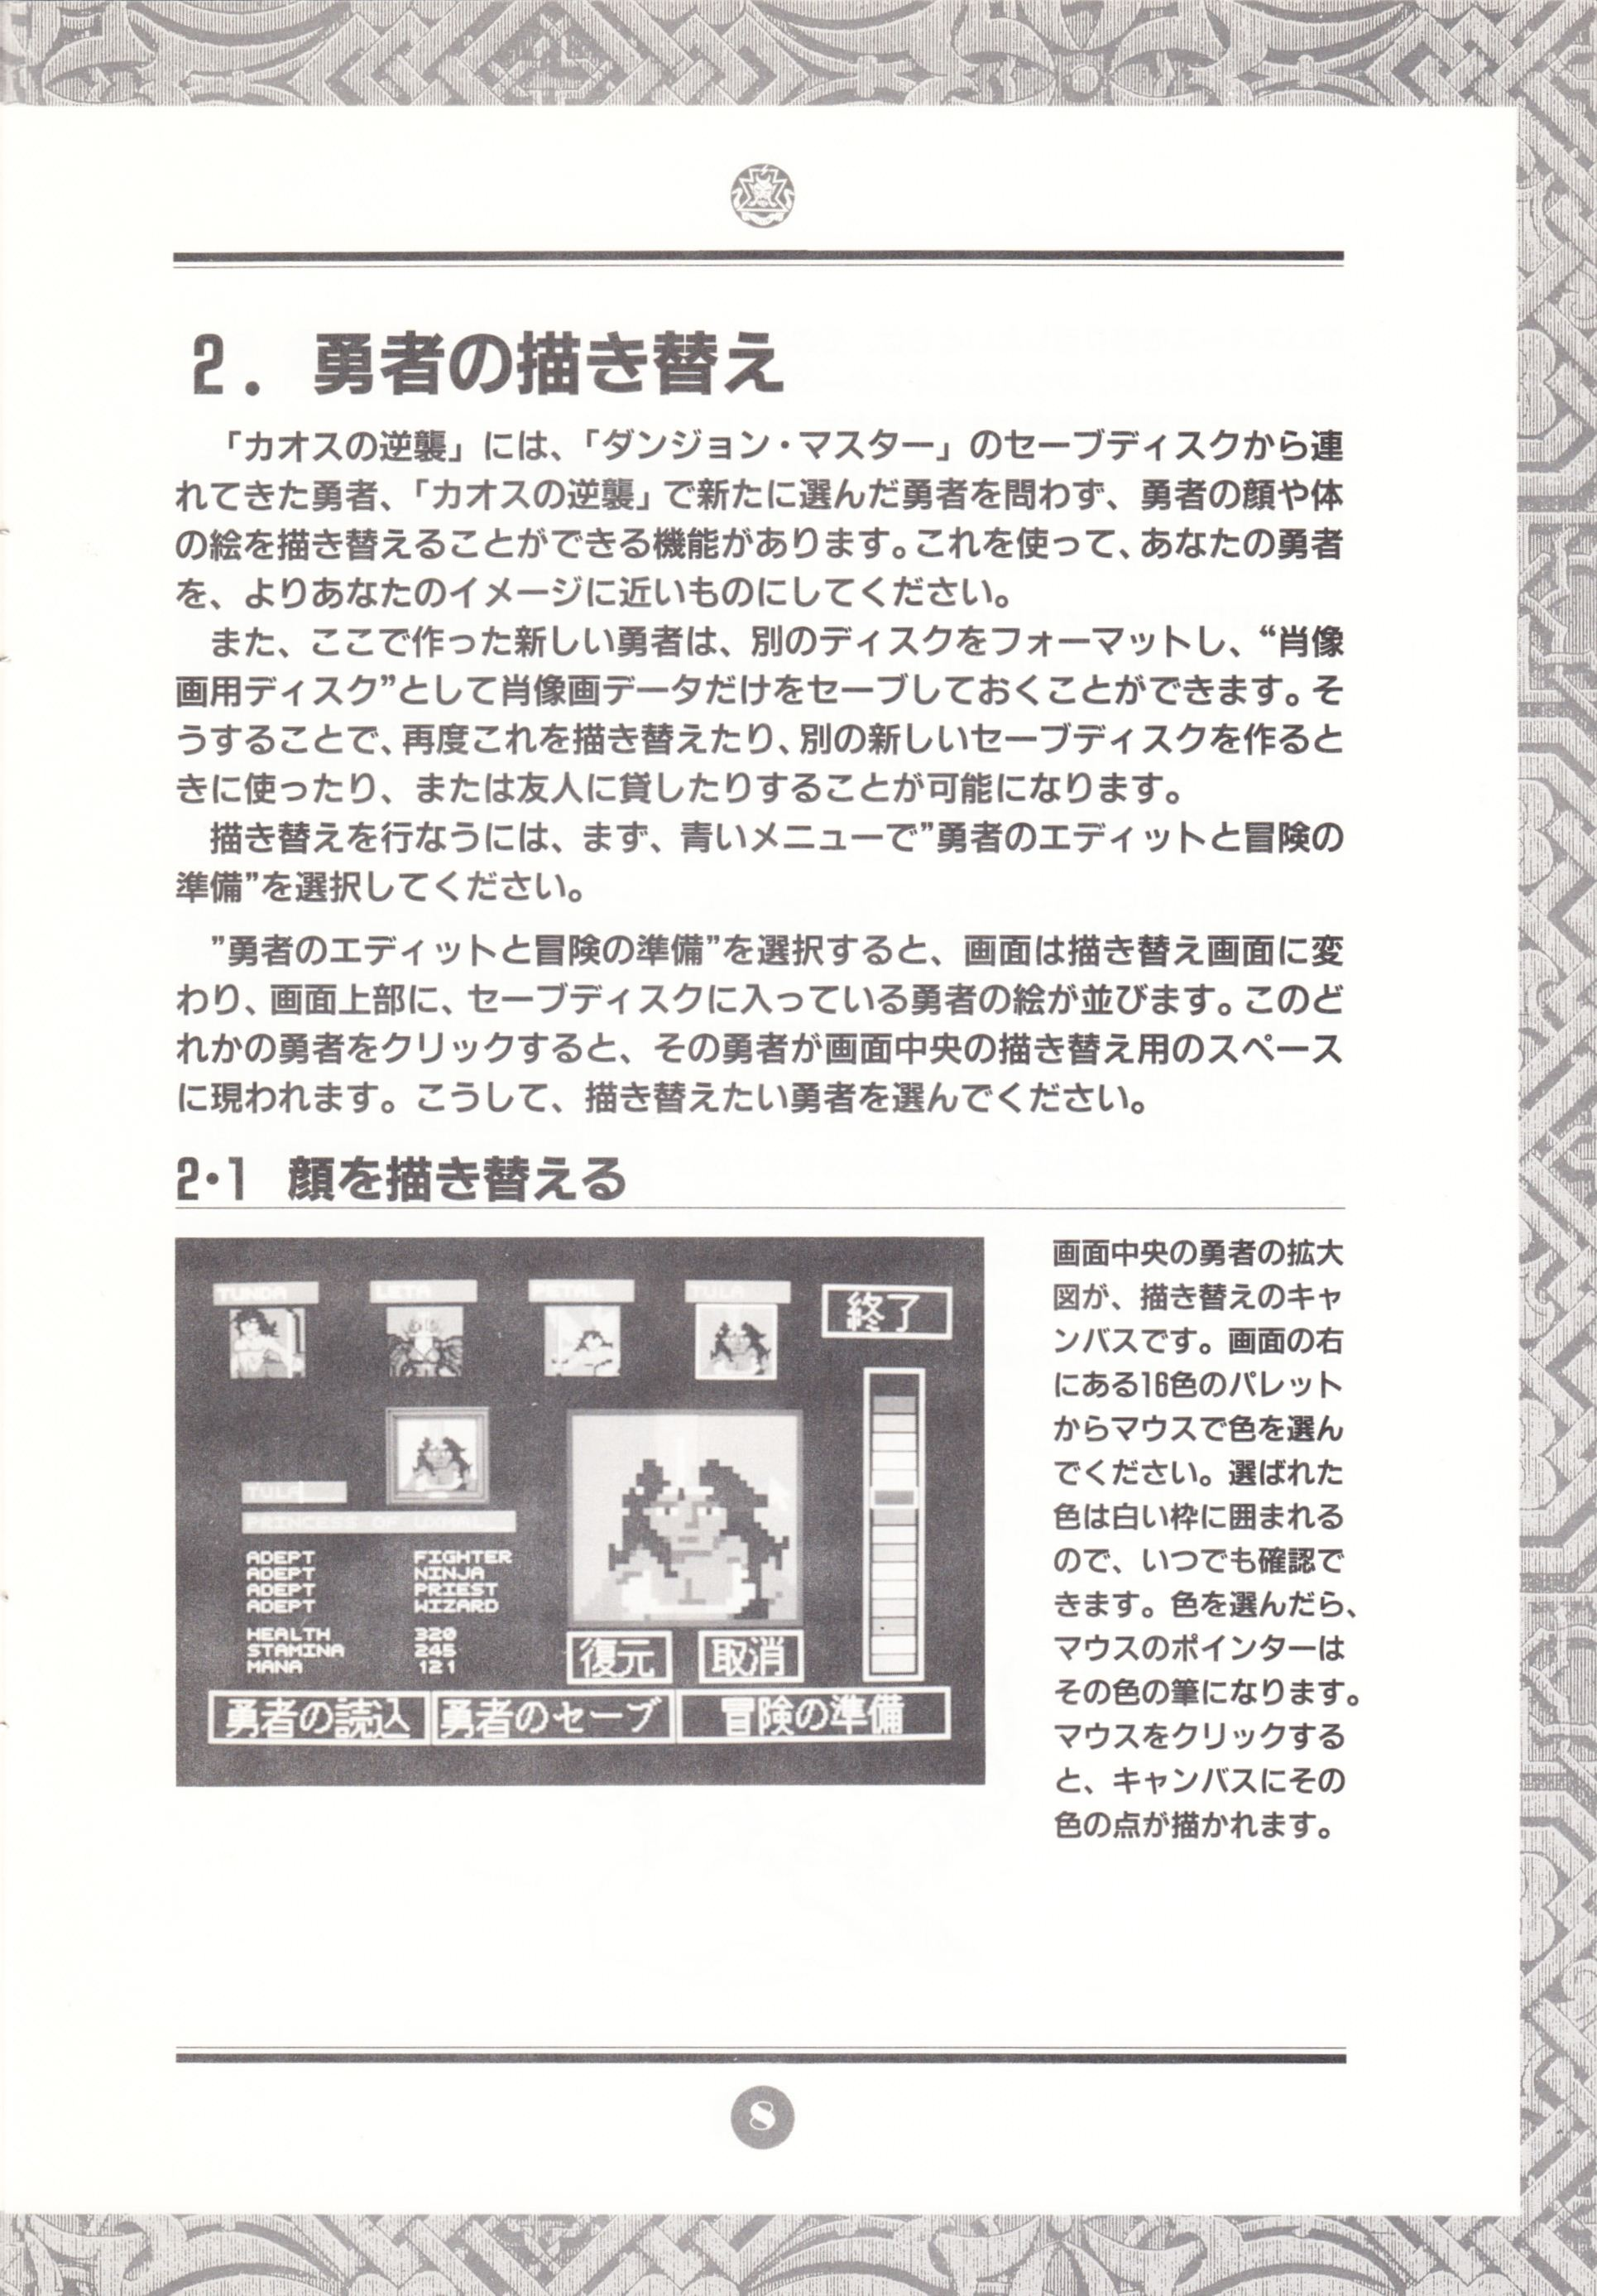 Game - Chaos Strikes Back - JP - FM Towns - An Operation Manual - Page 011 - Scan